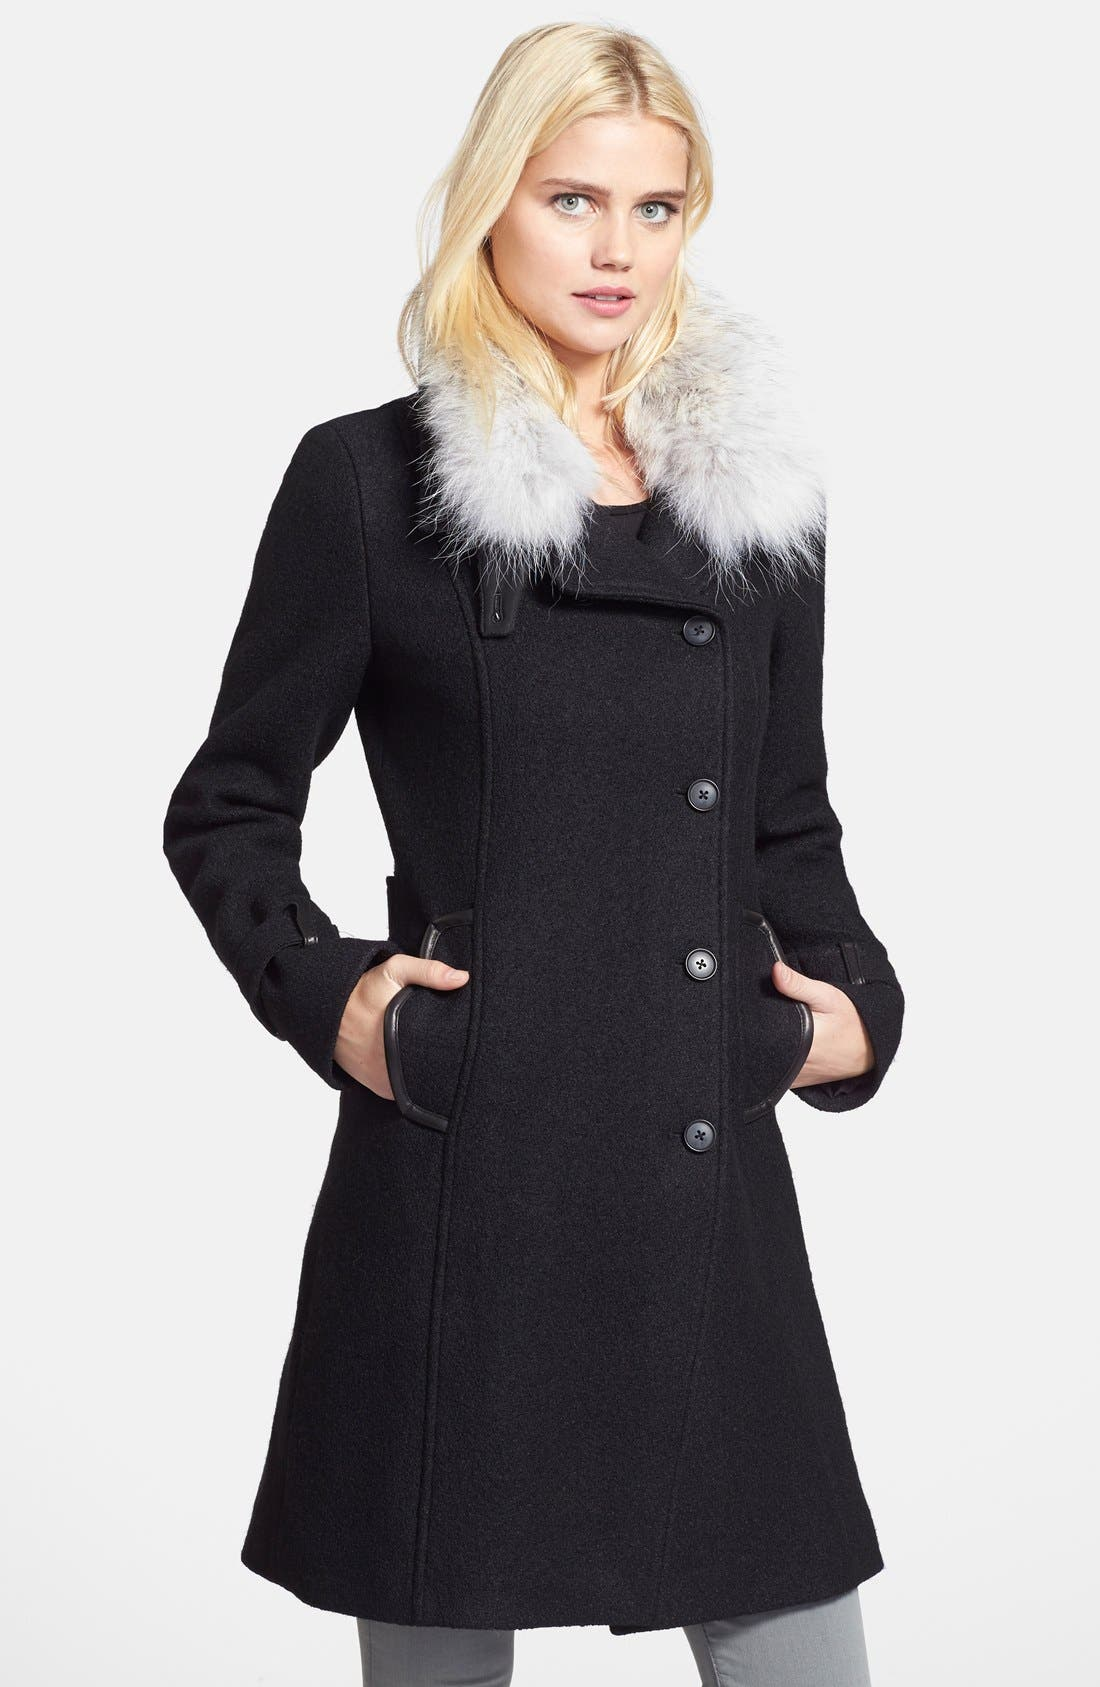 Alternate Image 1 Selected - Soia & Kyo Genuine Coyote Fur Collar Boucle Coat (Online Only)